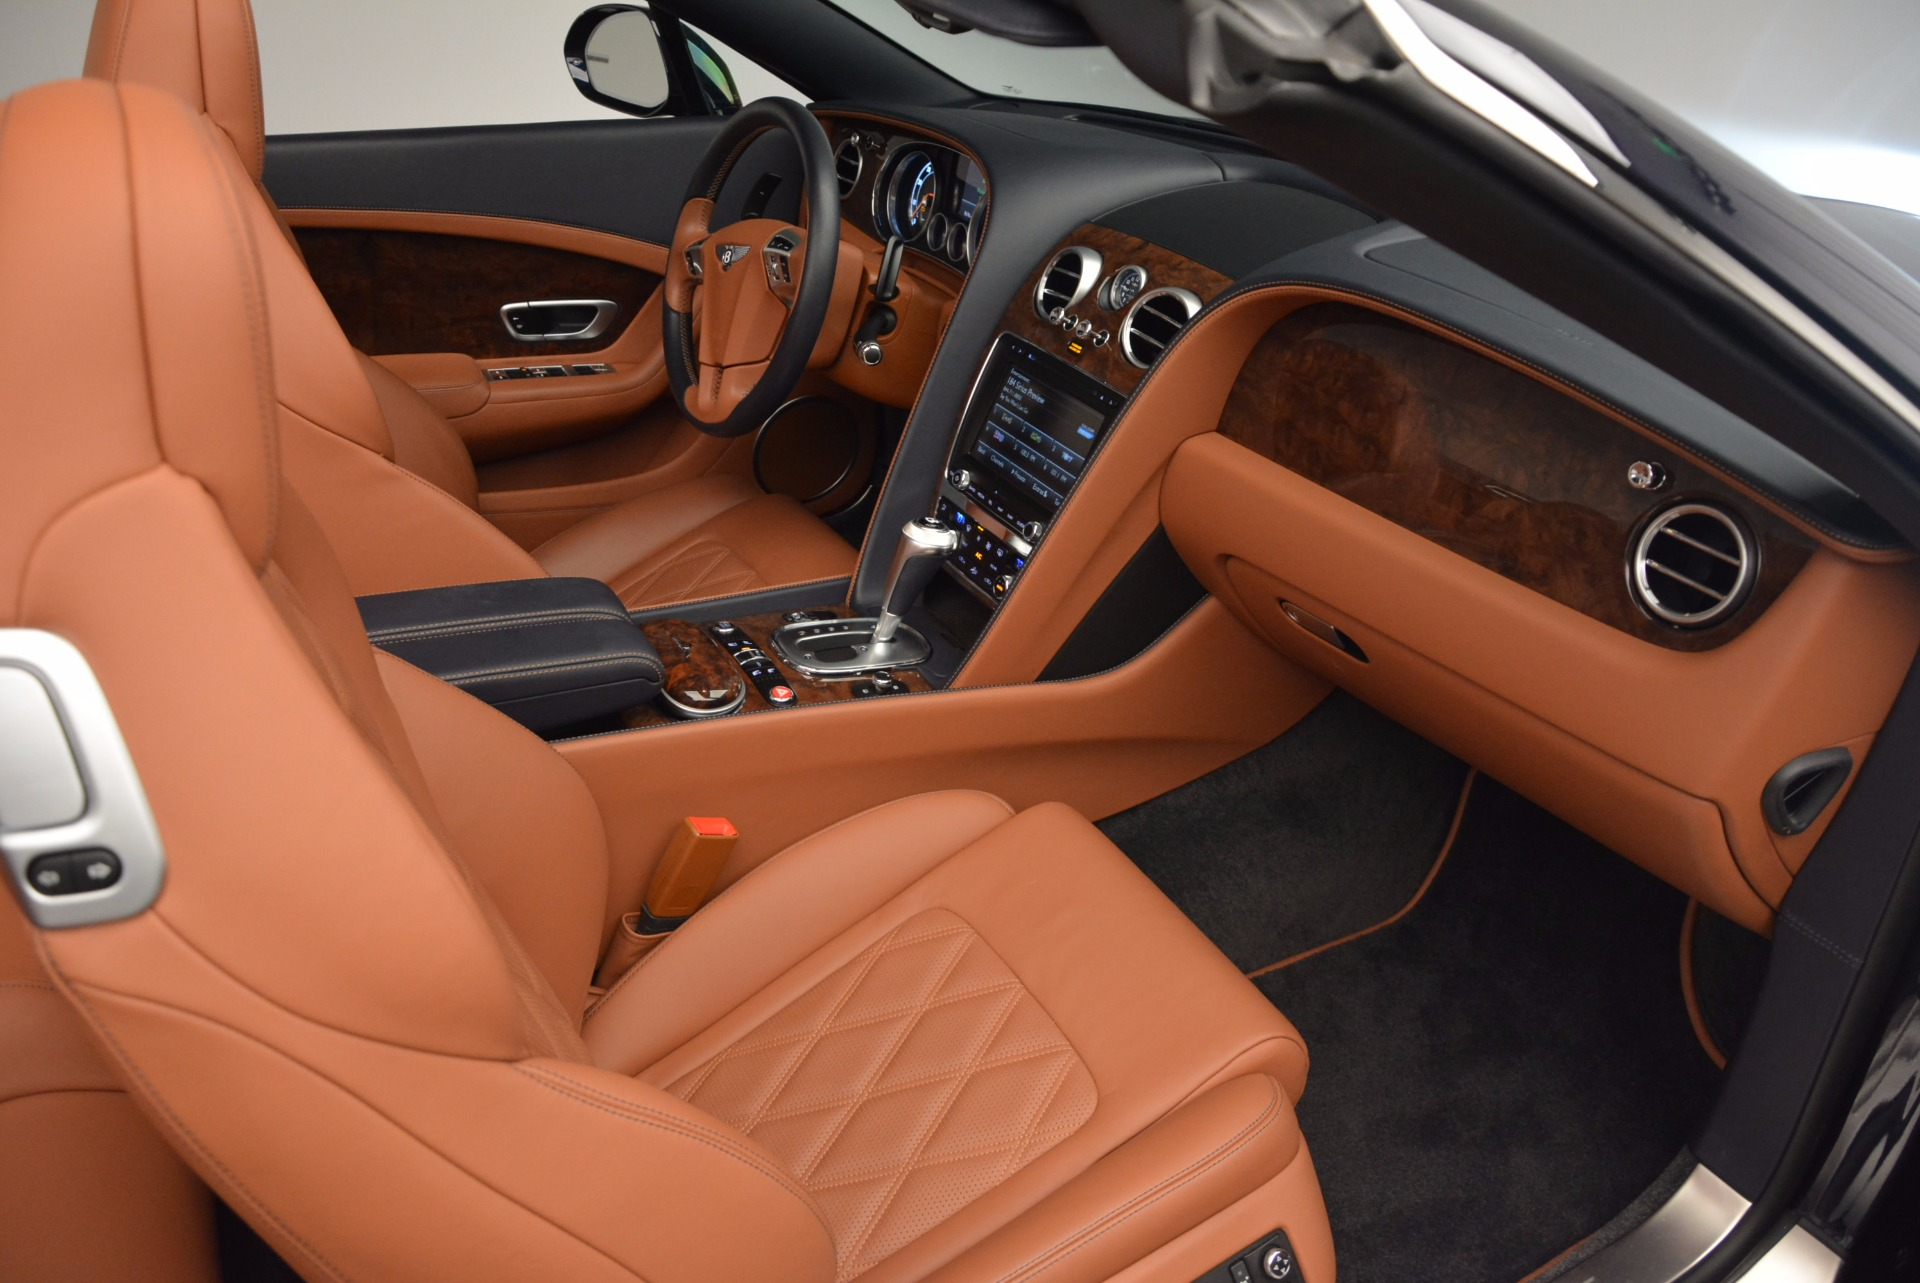 Used 2015 Bentley Continental GT V8 S For Sale In Westport, CT 807_p47